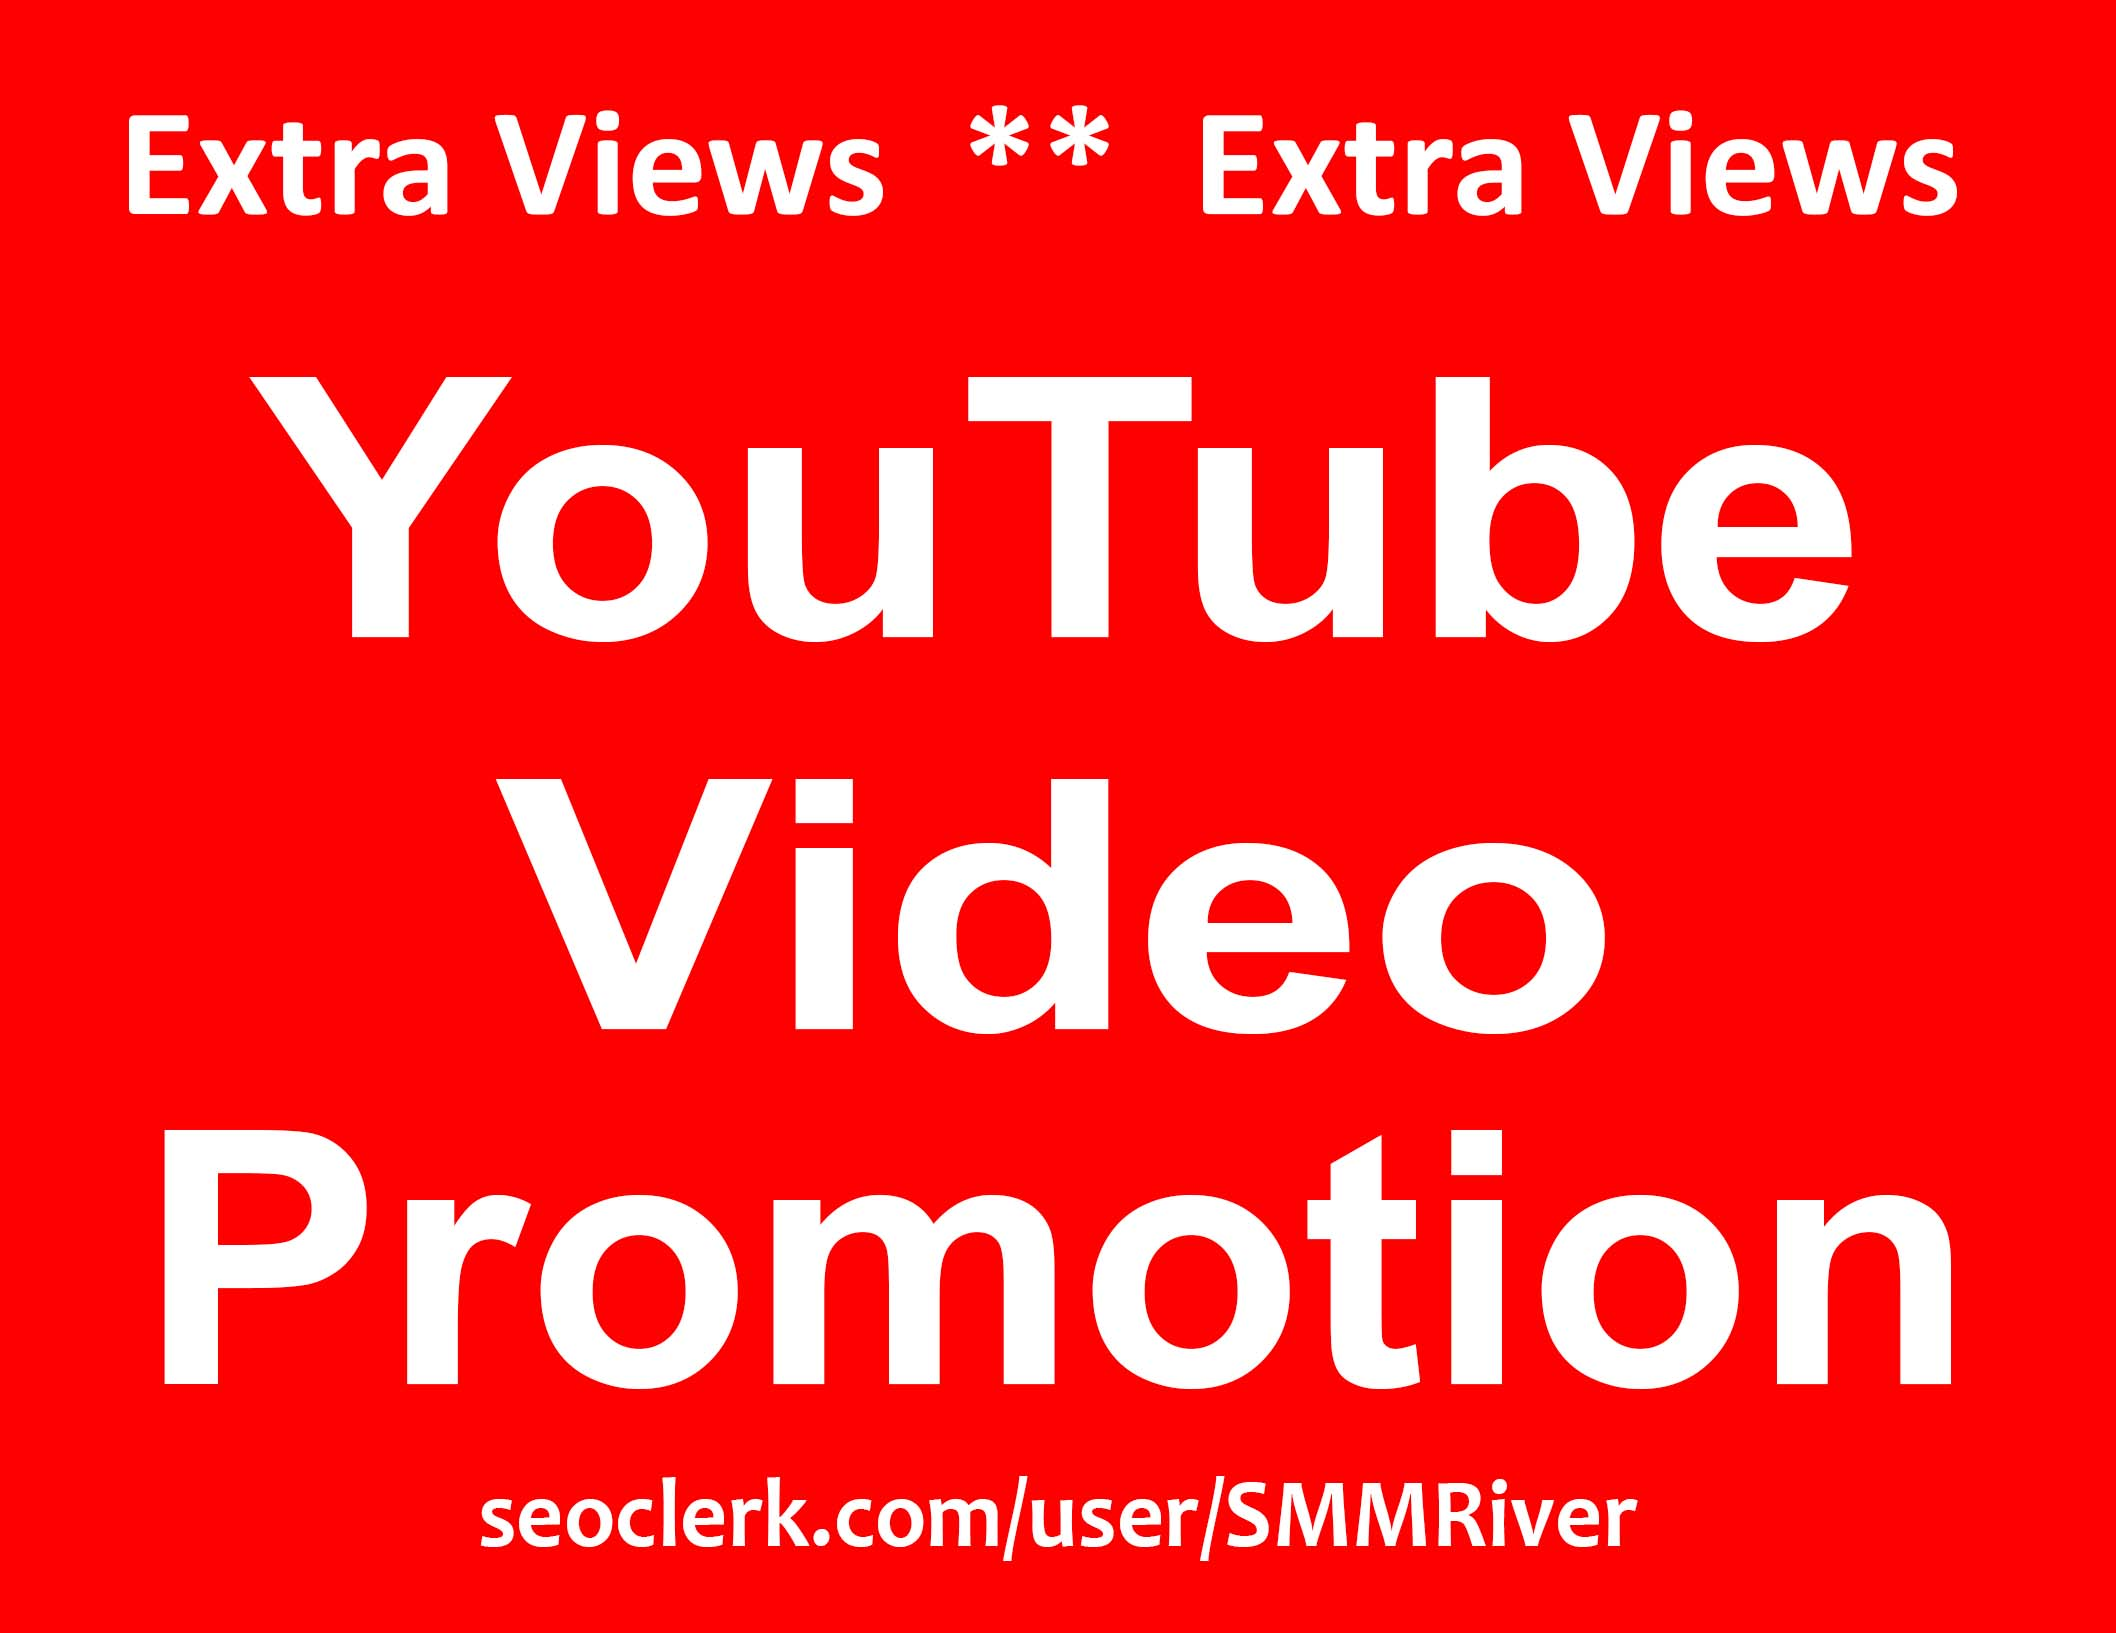 YouTube Video Promotion Active Users Guarantee